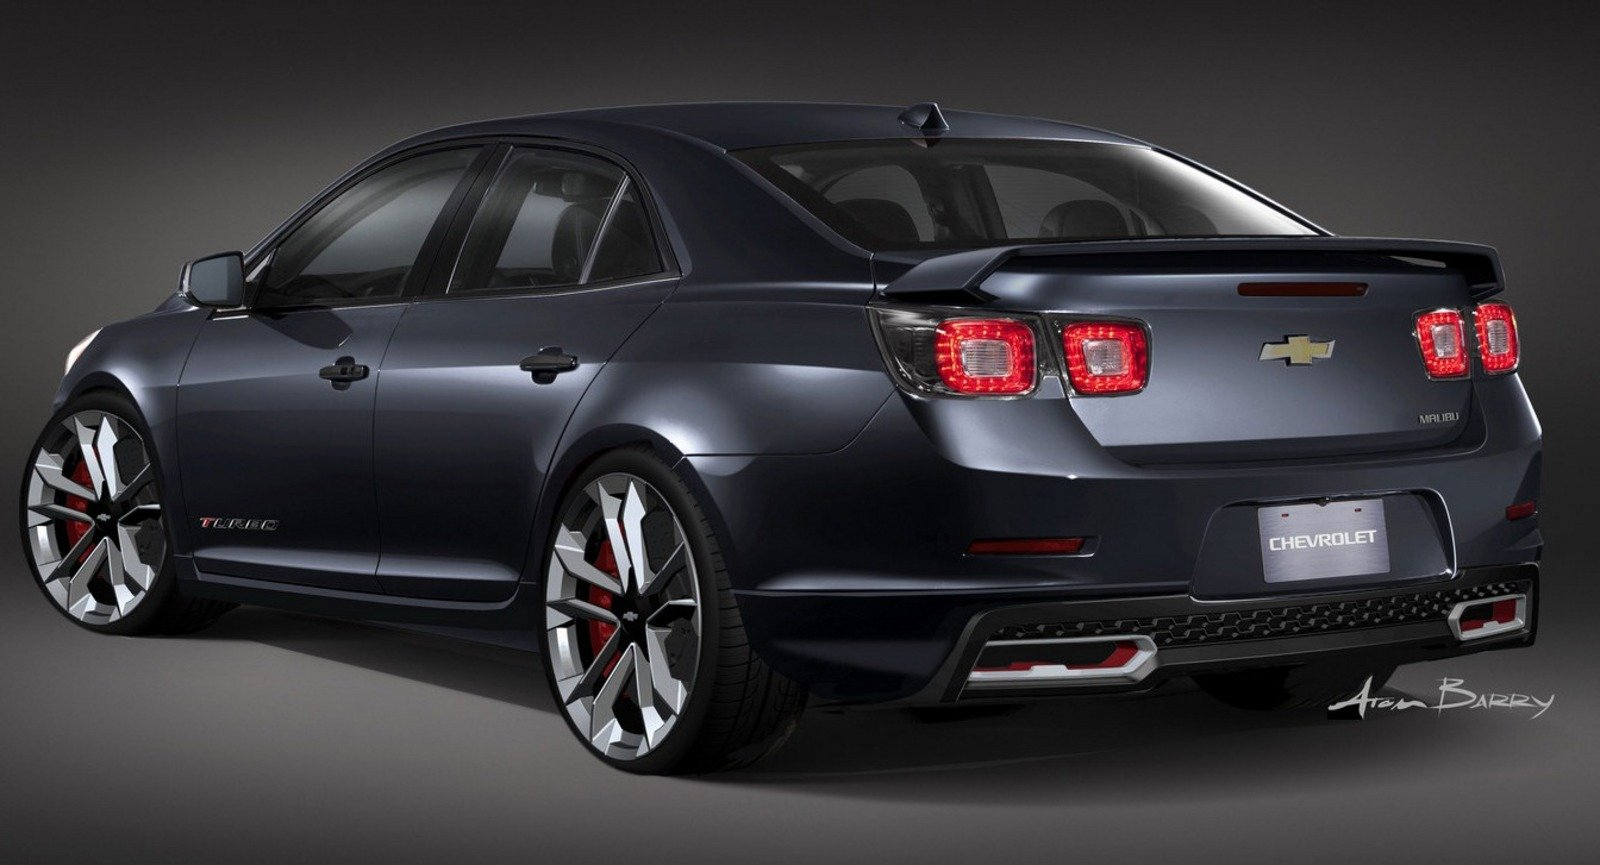 2013 Chevrolet Malibu Turbo Performance Concept Review ...